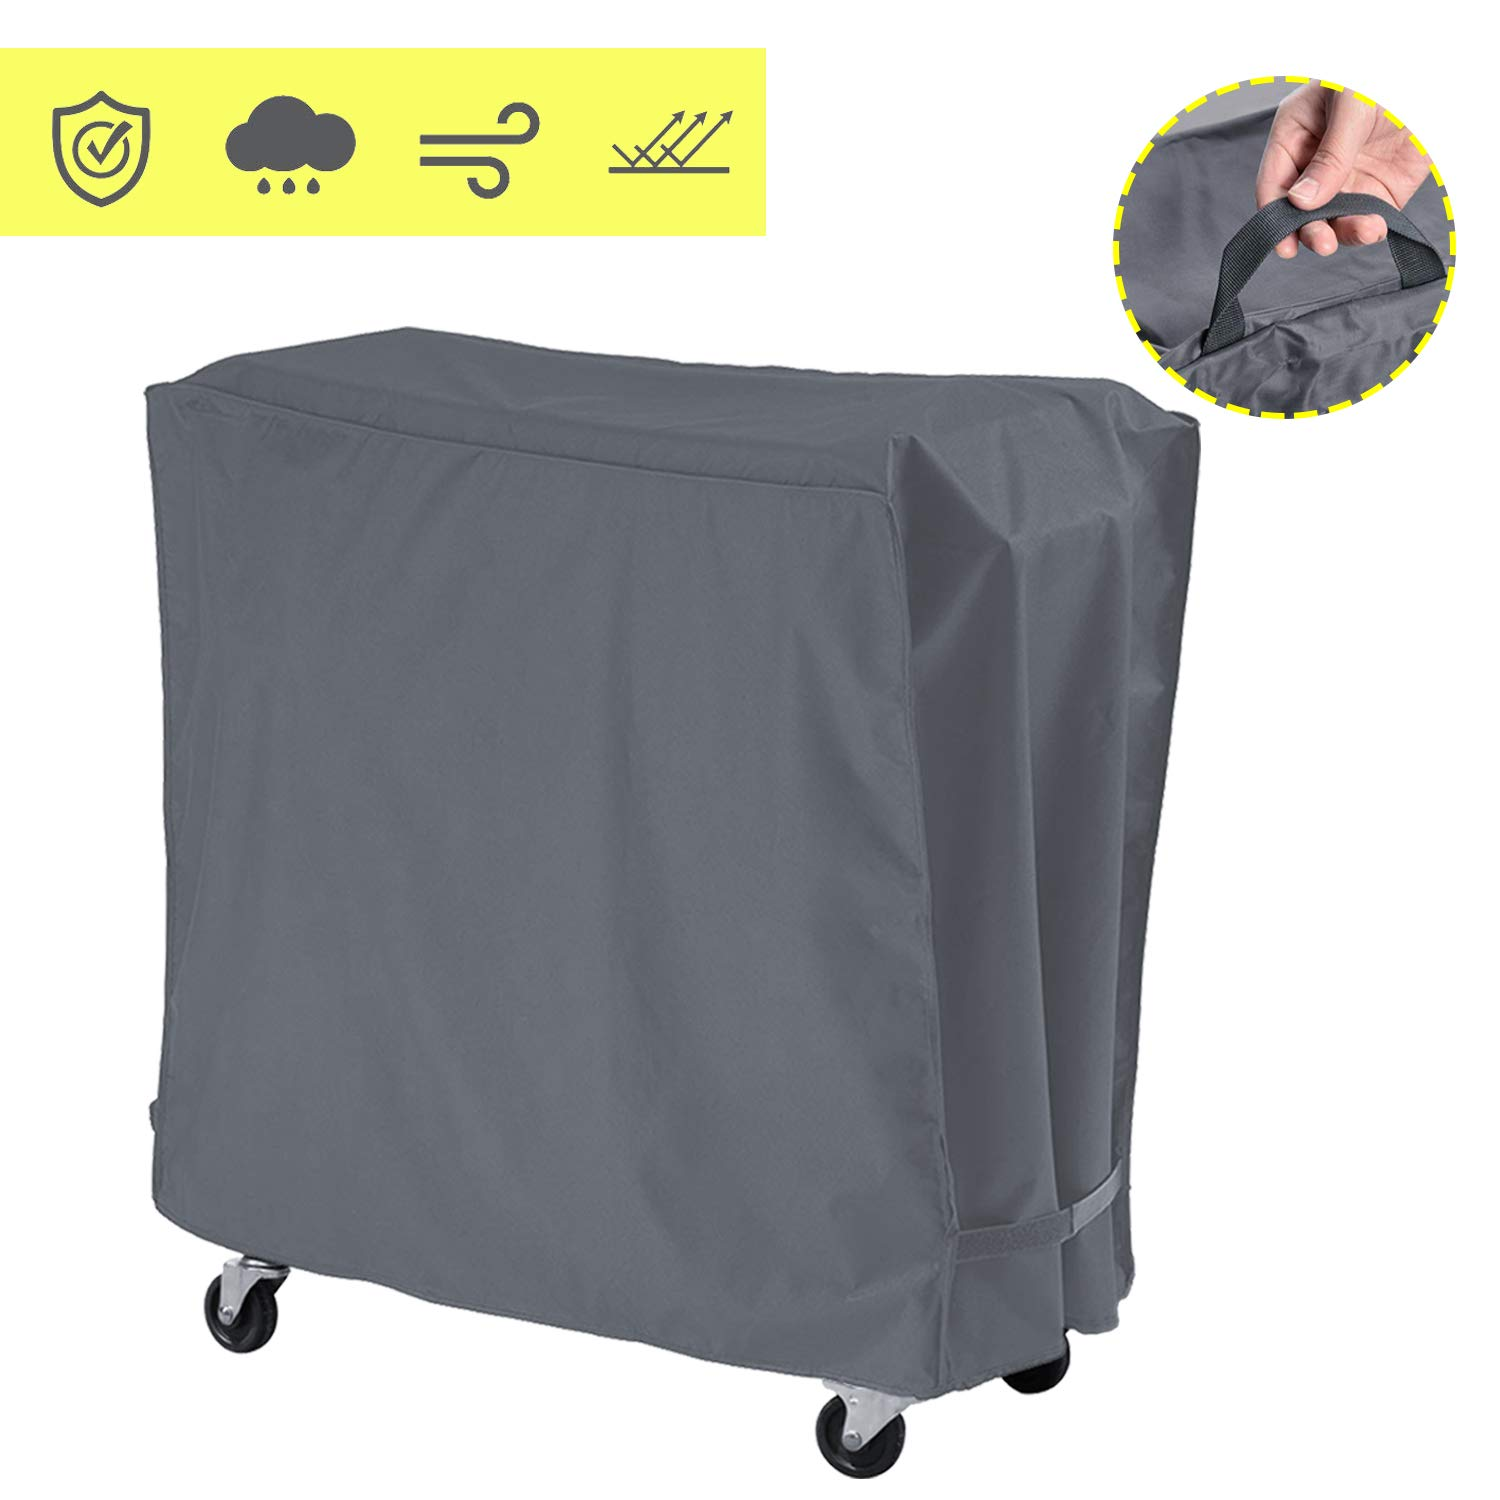 AKEfit Cooler Cart Cover Universal Outdoor 80 Quart Rolling Ice Cooler Cover,Waterproof Durable Fabric with Handles, Pool Cooler Cover,Rolling Ice Chest Cover,Party Cooler (Grey) by AKEfit